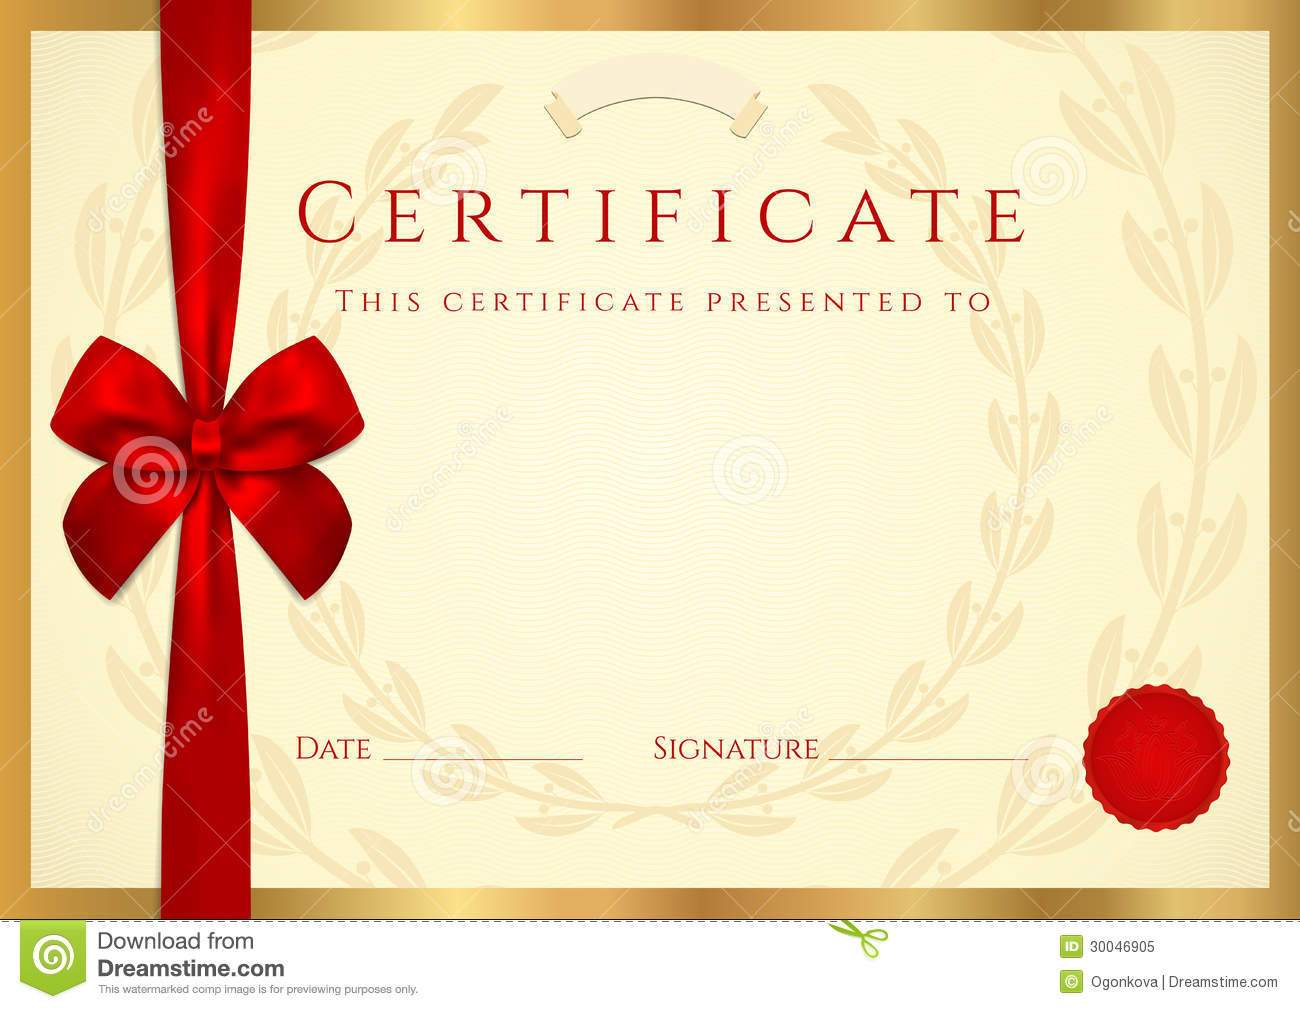 congratulations gift certificate template resume builder congratulations gift certificate template printable congratulations award certificates templates certificate of completion template wax seal